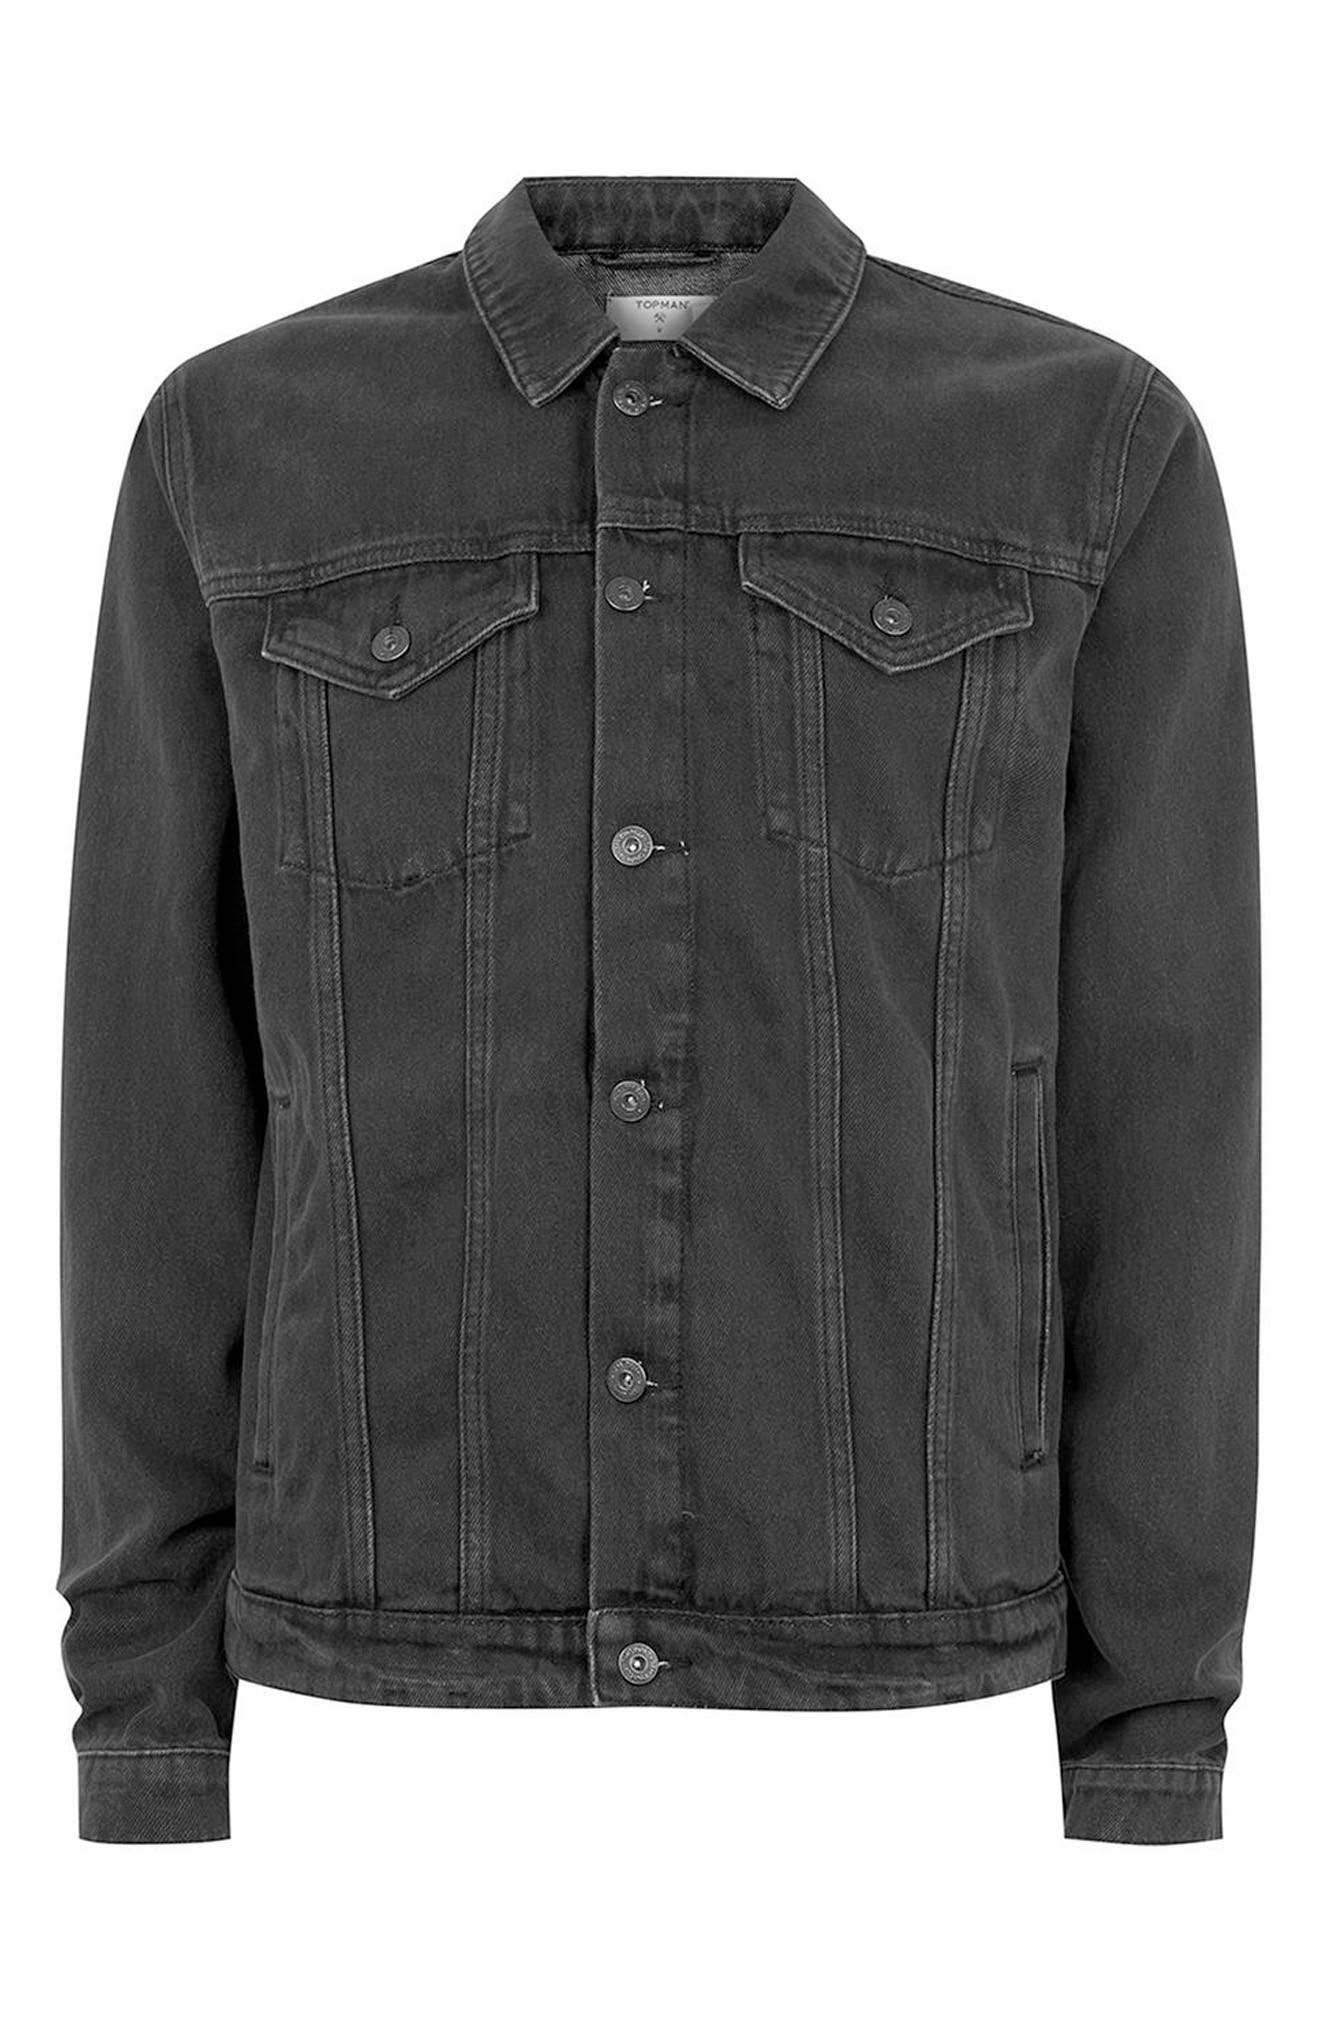 Western Denim Jacket,                             Alternate thumbnail 4, color,                             001